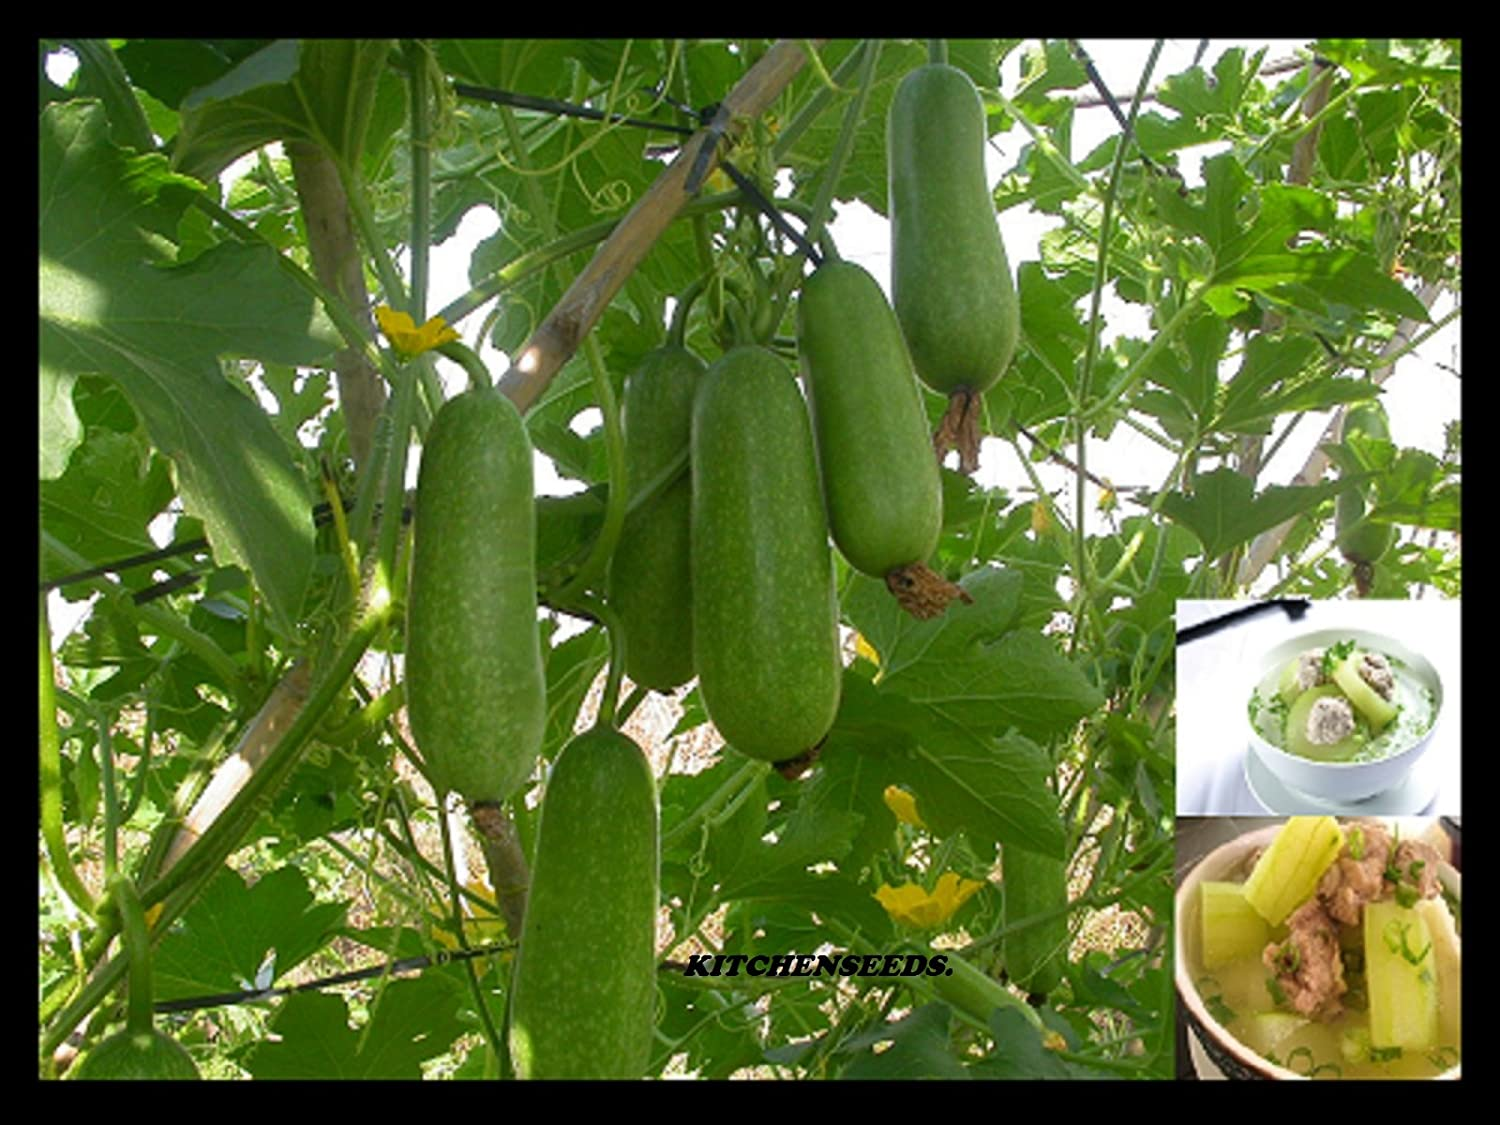 (100) Hairy Gourd seeds,Winter Melon,fuzzy chinese Squash, Mao Gua (Bi Dao) seed by Kitchenseeds